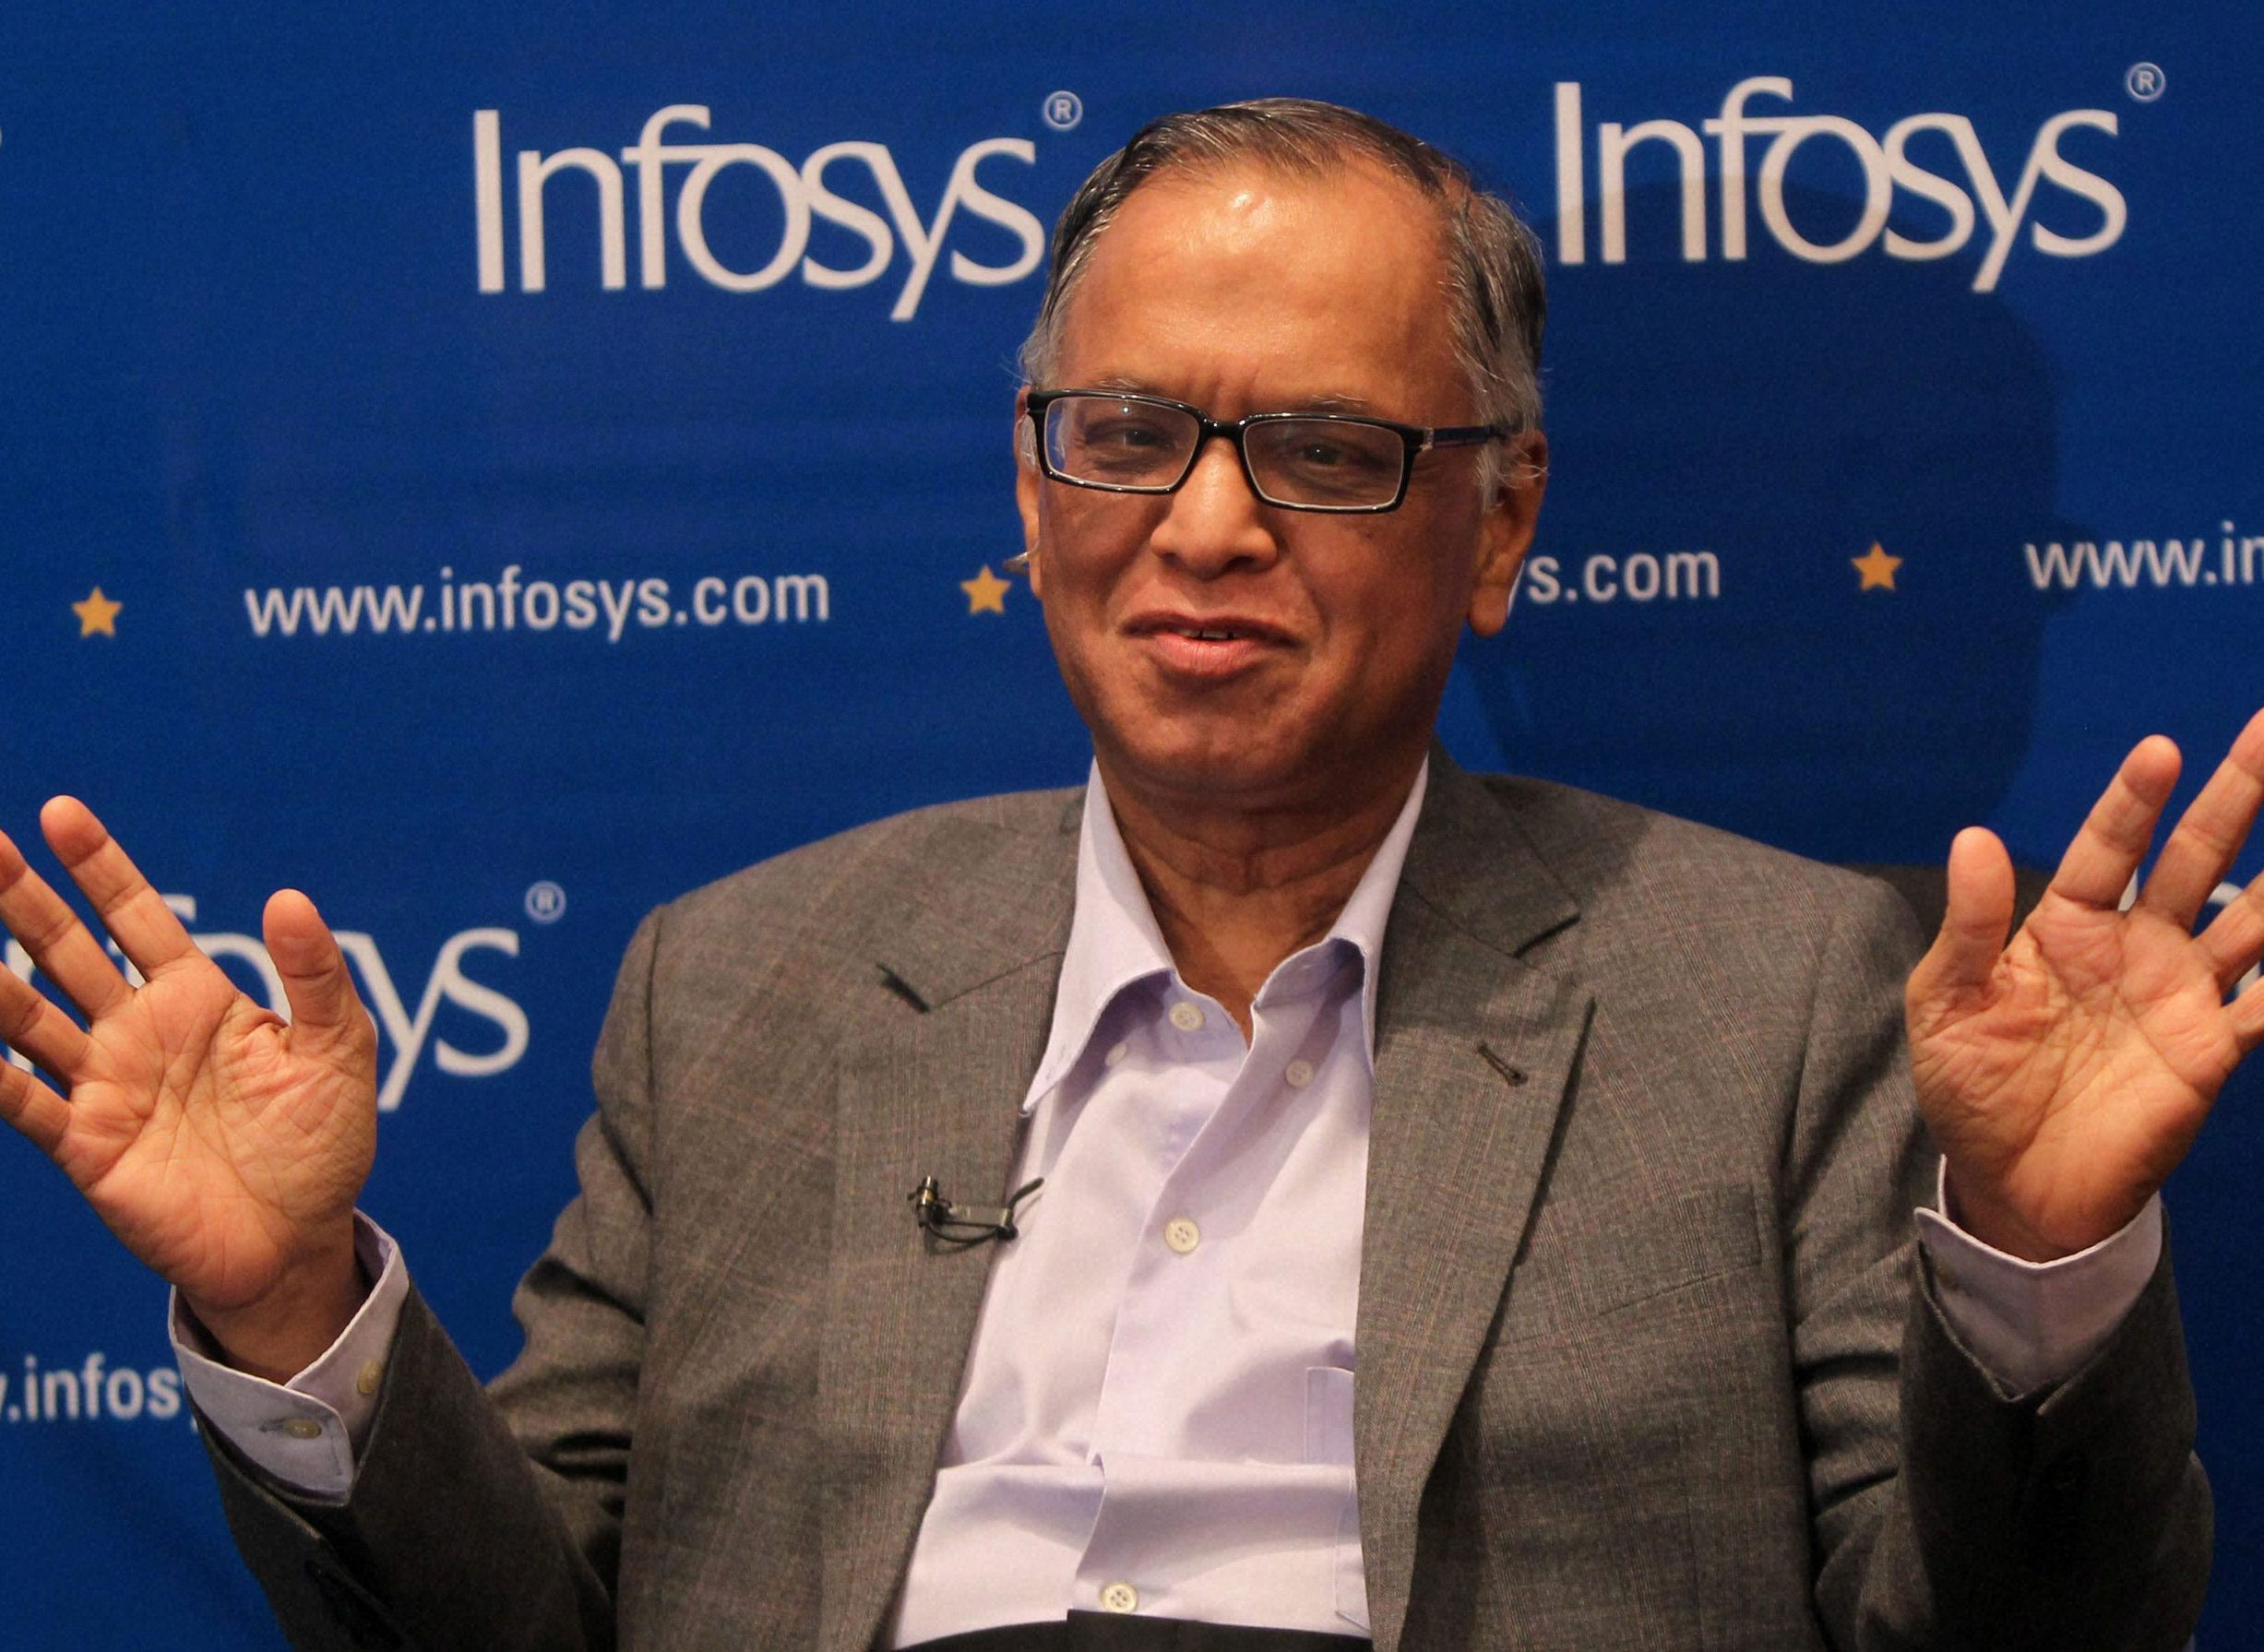 Infosys braces for stormy AGM